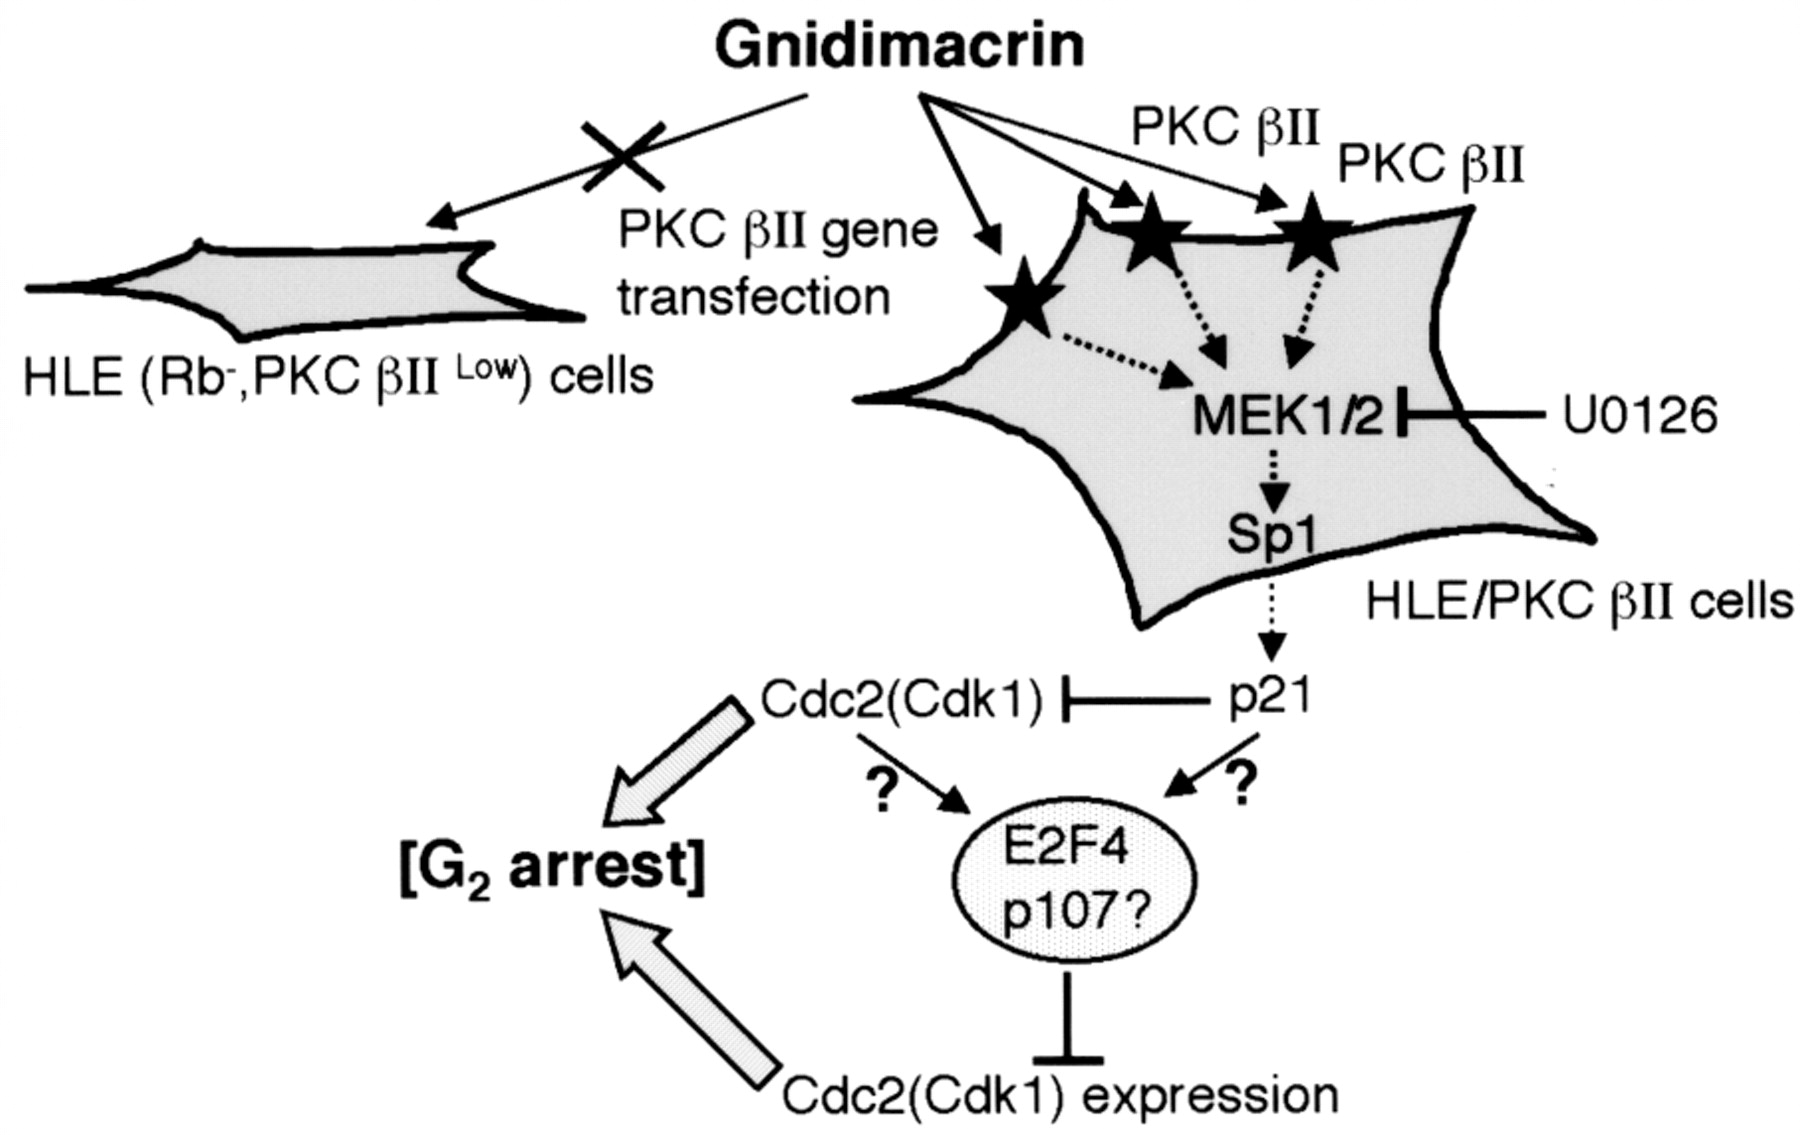 G2 Phase Arrest Through P21 Waf1 Cip1 Induction And Cdc2 Repression By Gnidimacrin In Human Hepatoma Hle Cells The common industrial protocol (cip) is an industrial protocol for industrial automation applications. anticancer research international institute of anticancer research